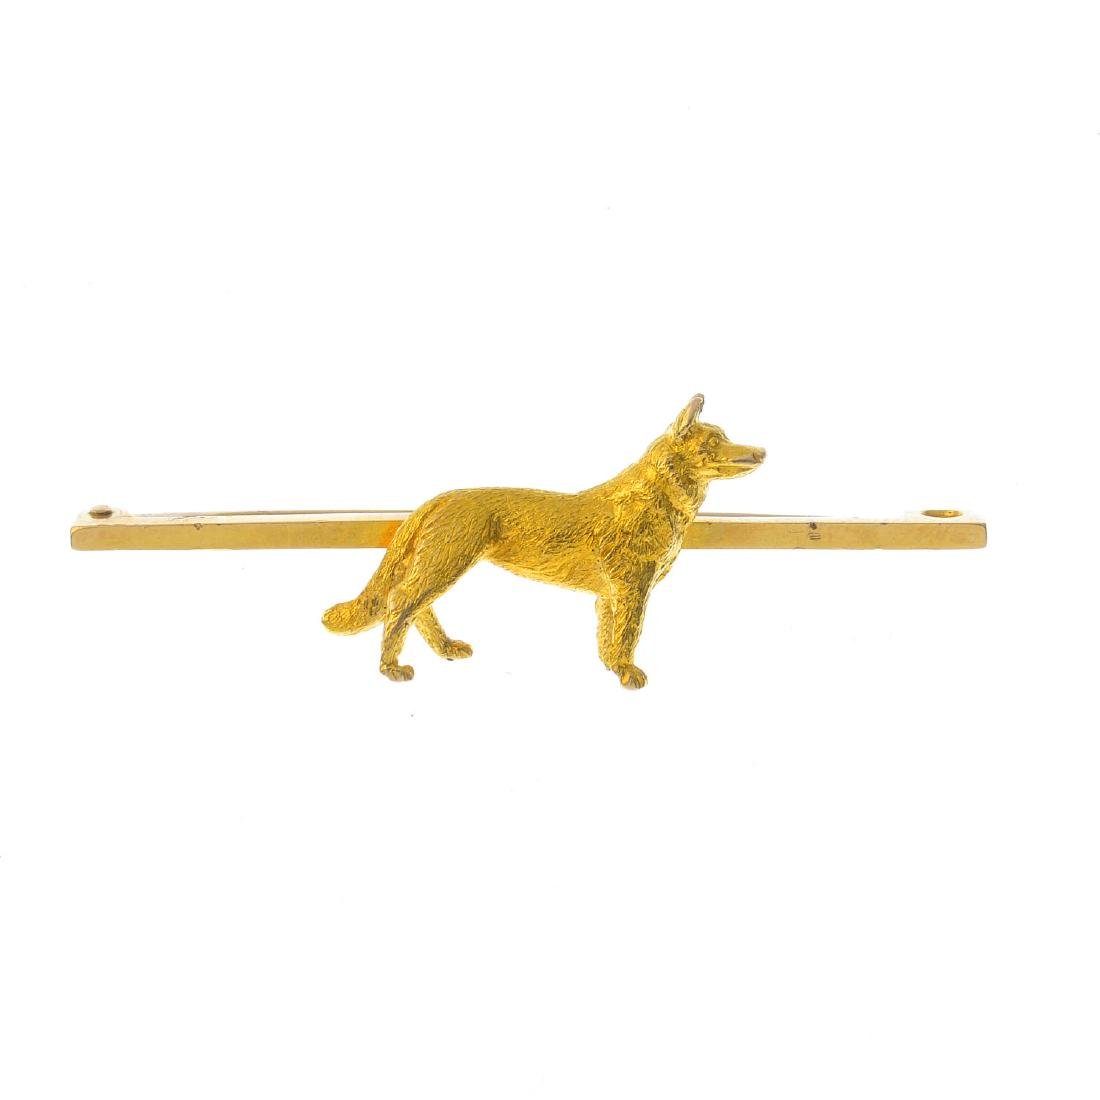 A dog bar brooch. Design as a textured dog. atop a